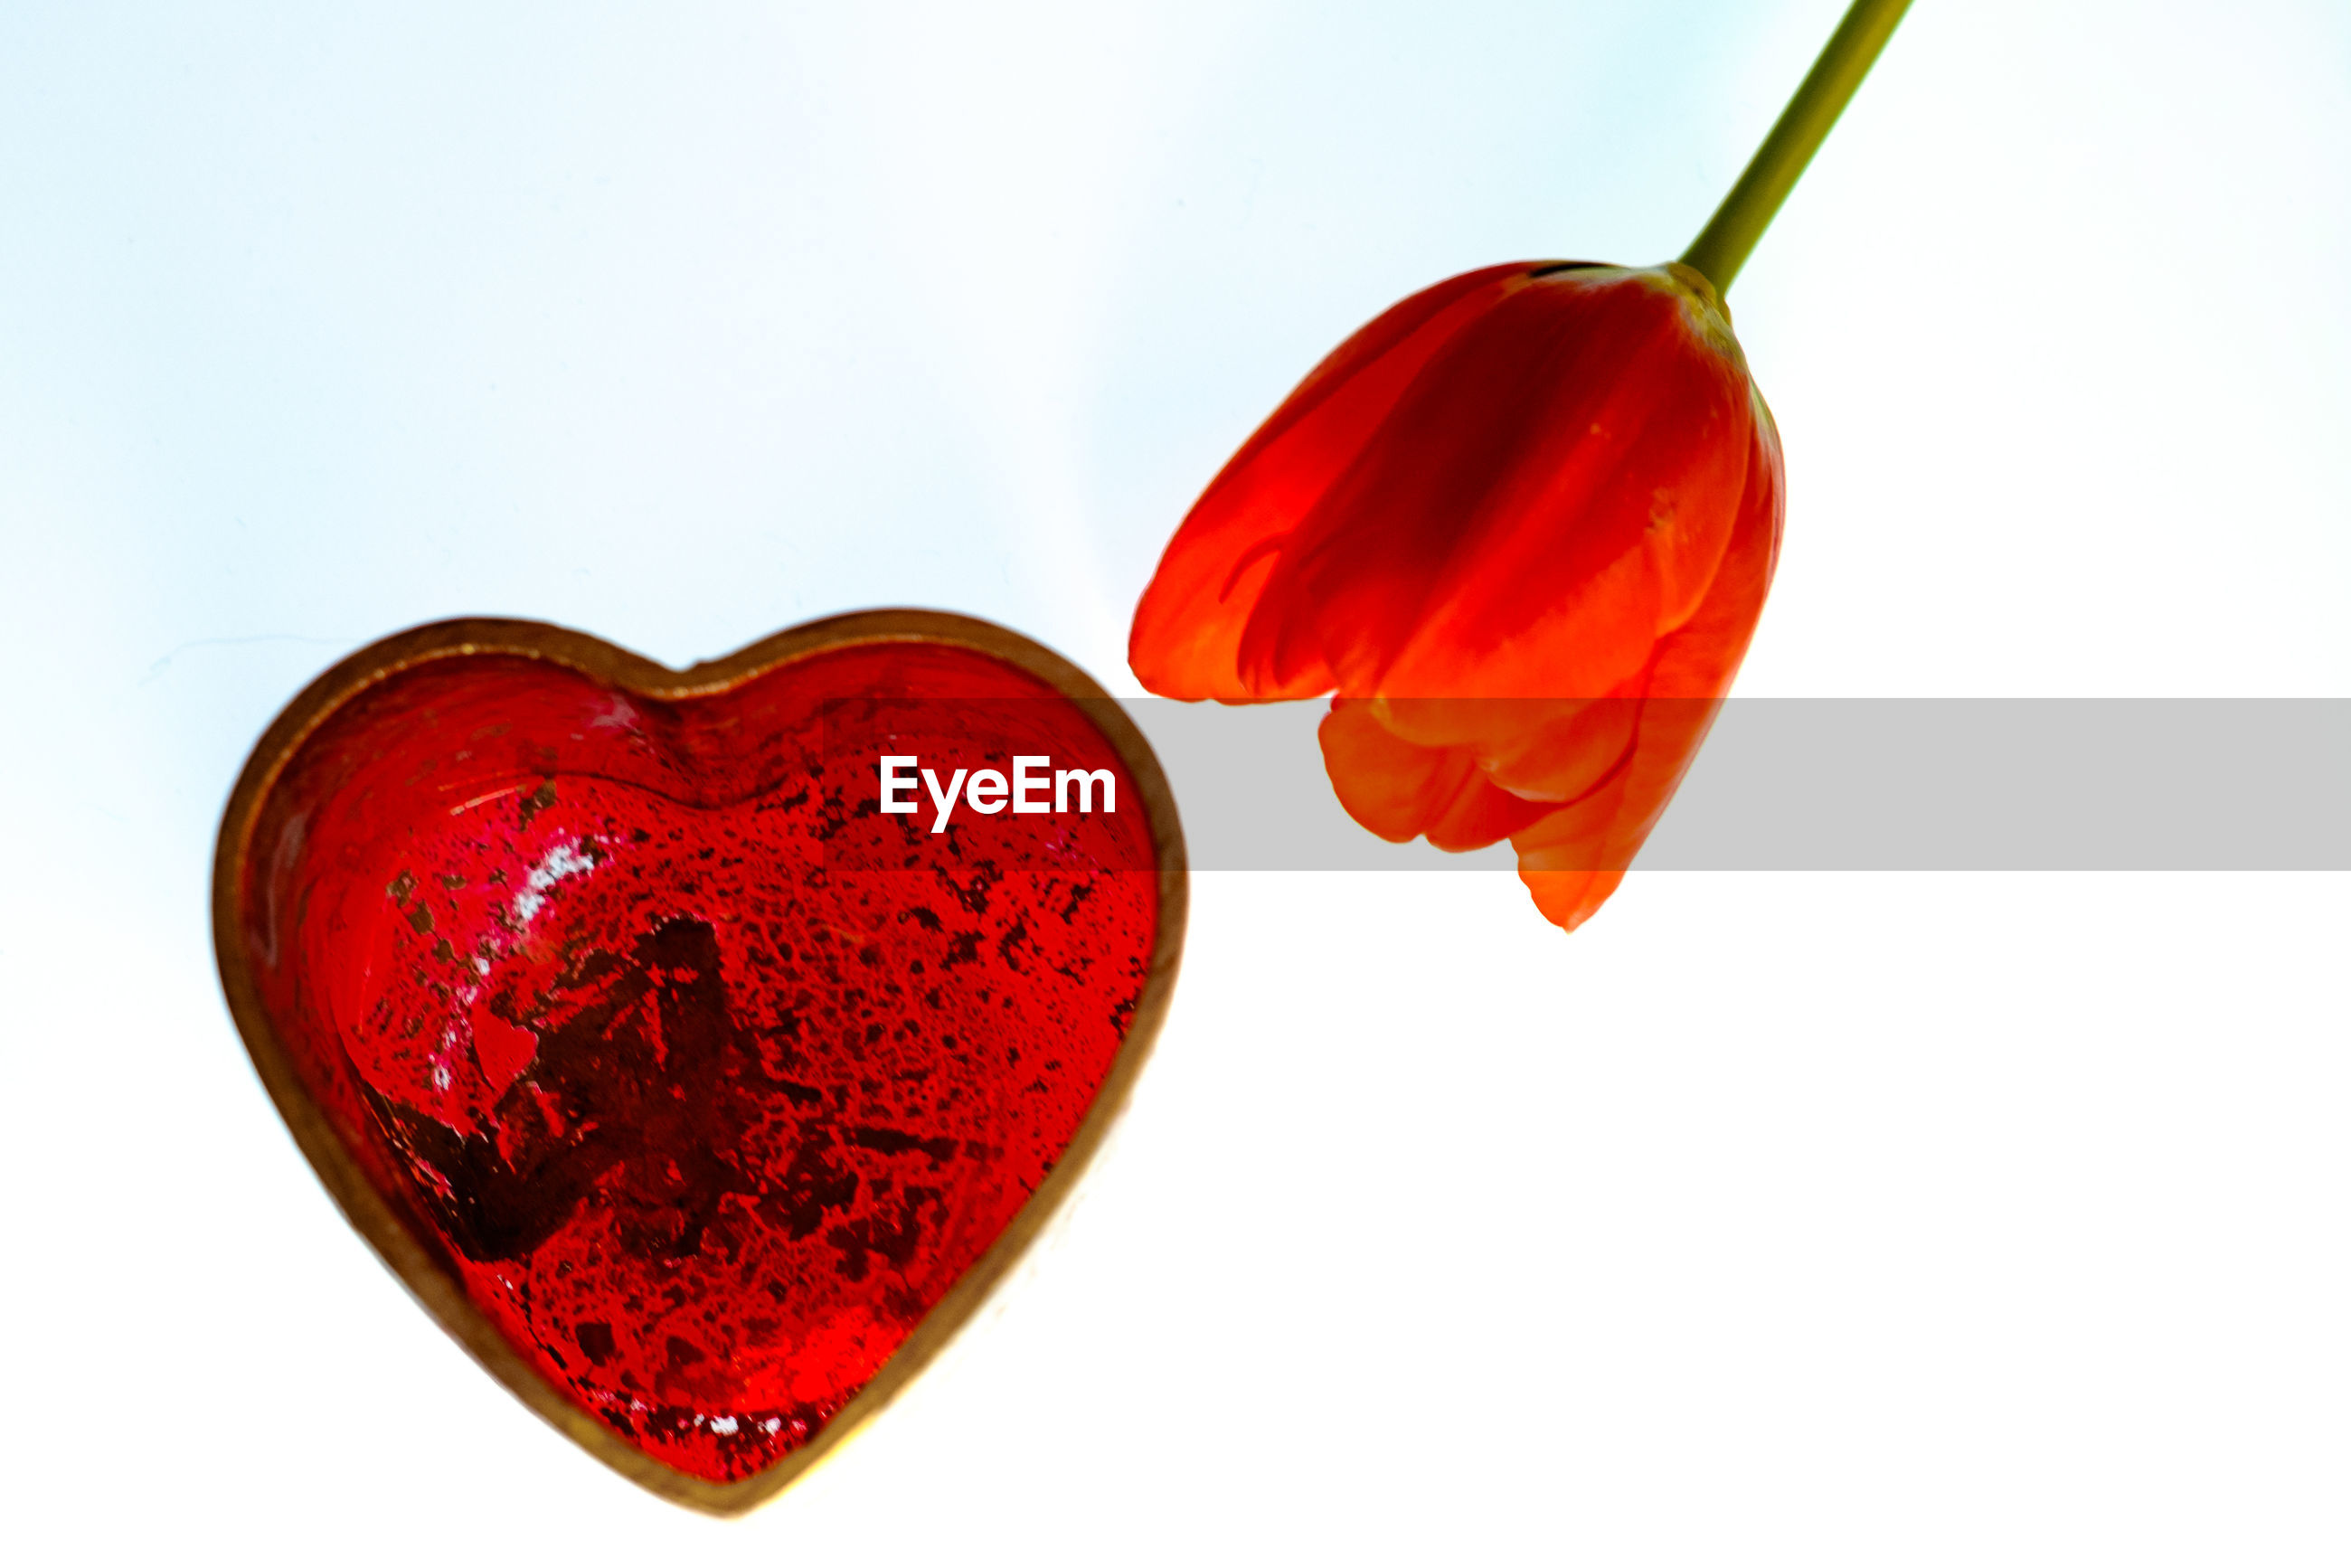 Close-up of heart shape with flower against blue background